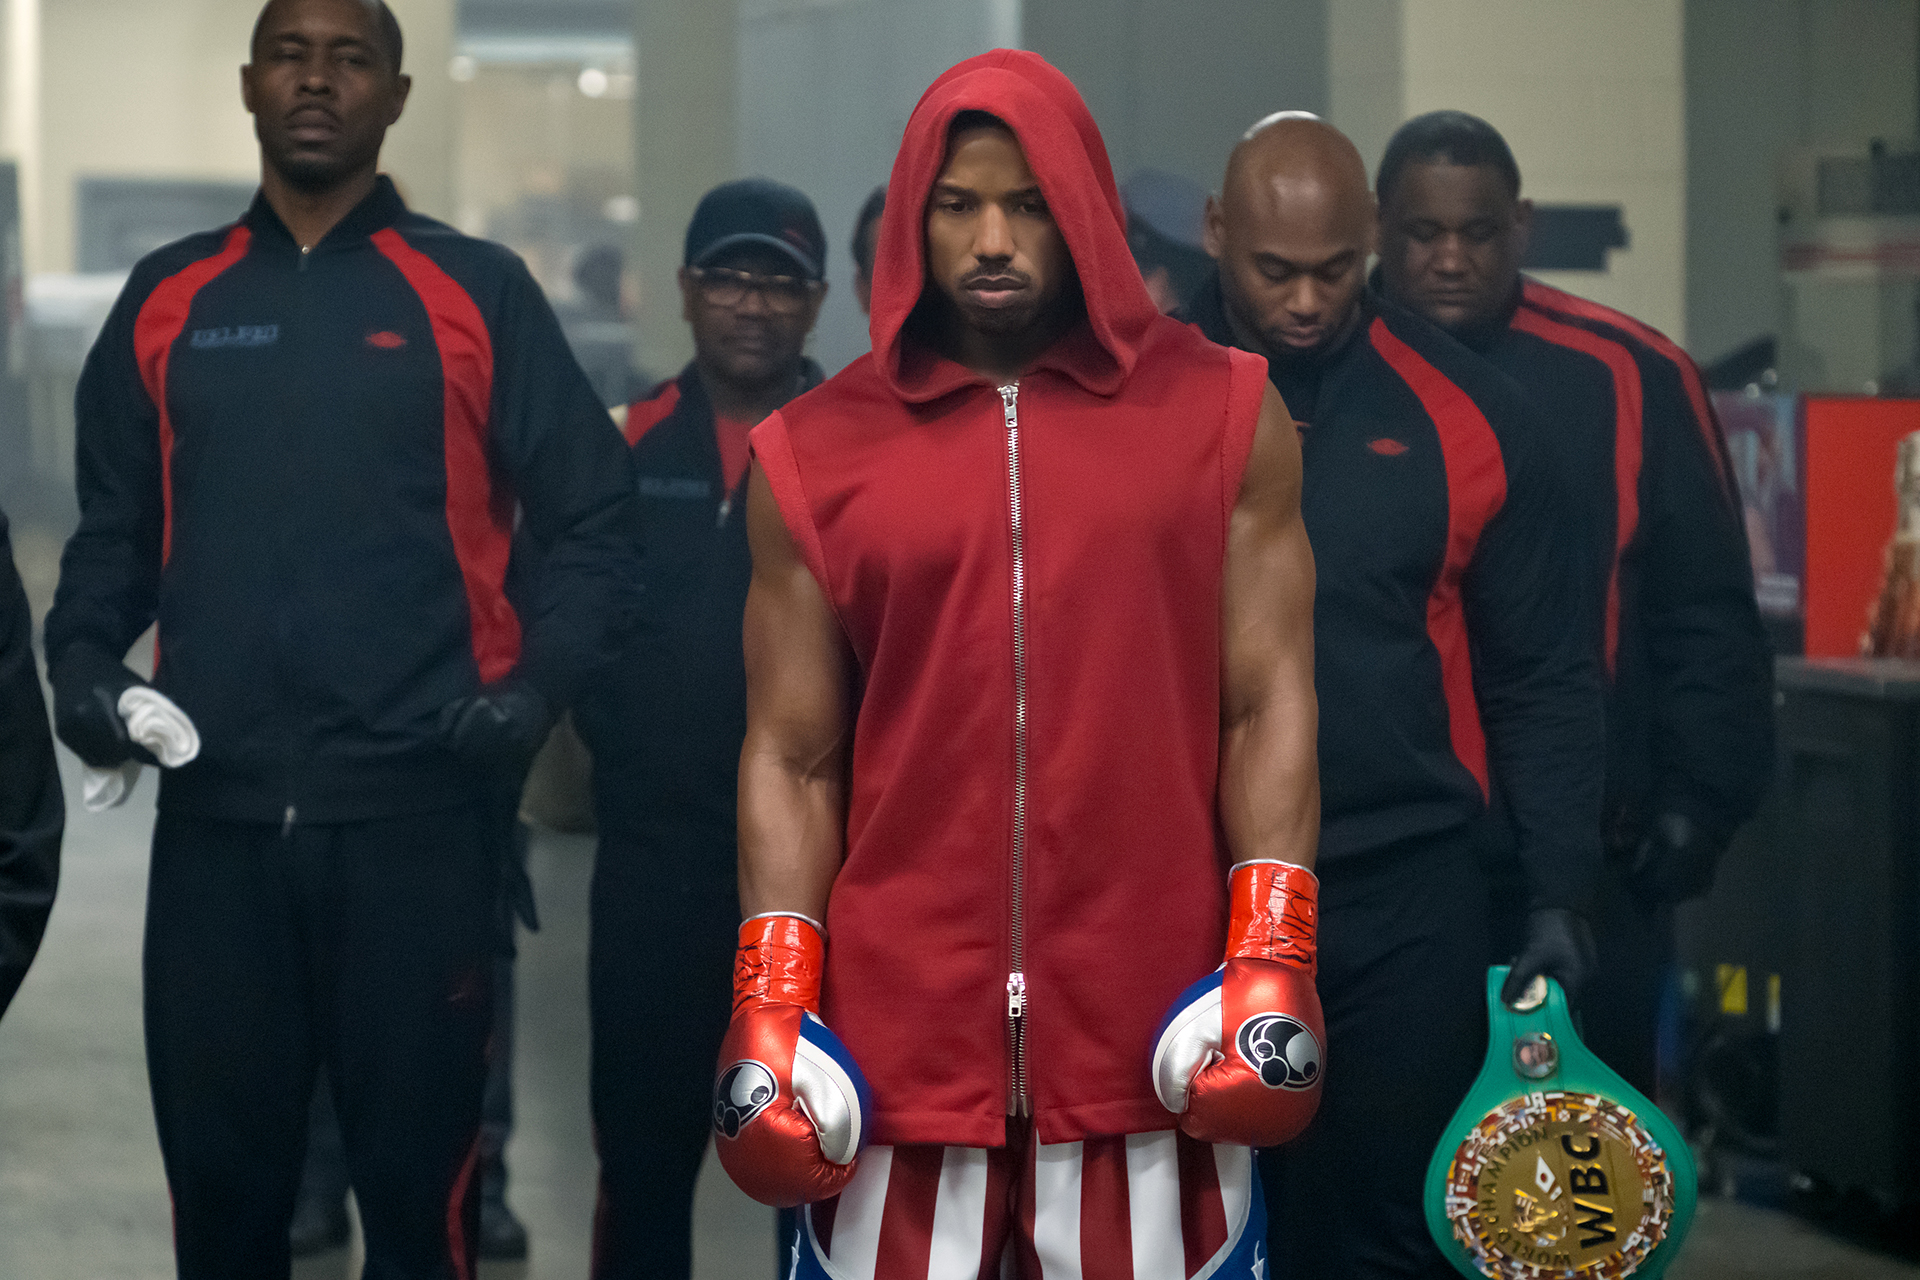 Blu-ray/DVD Review: CREED II (2018)